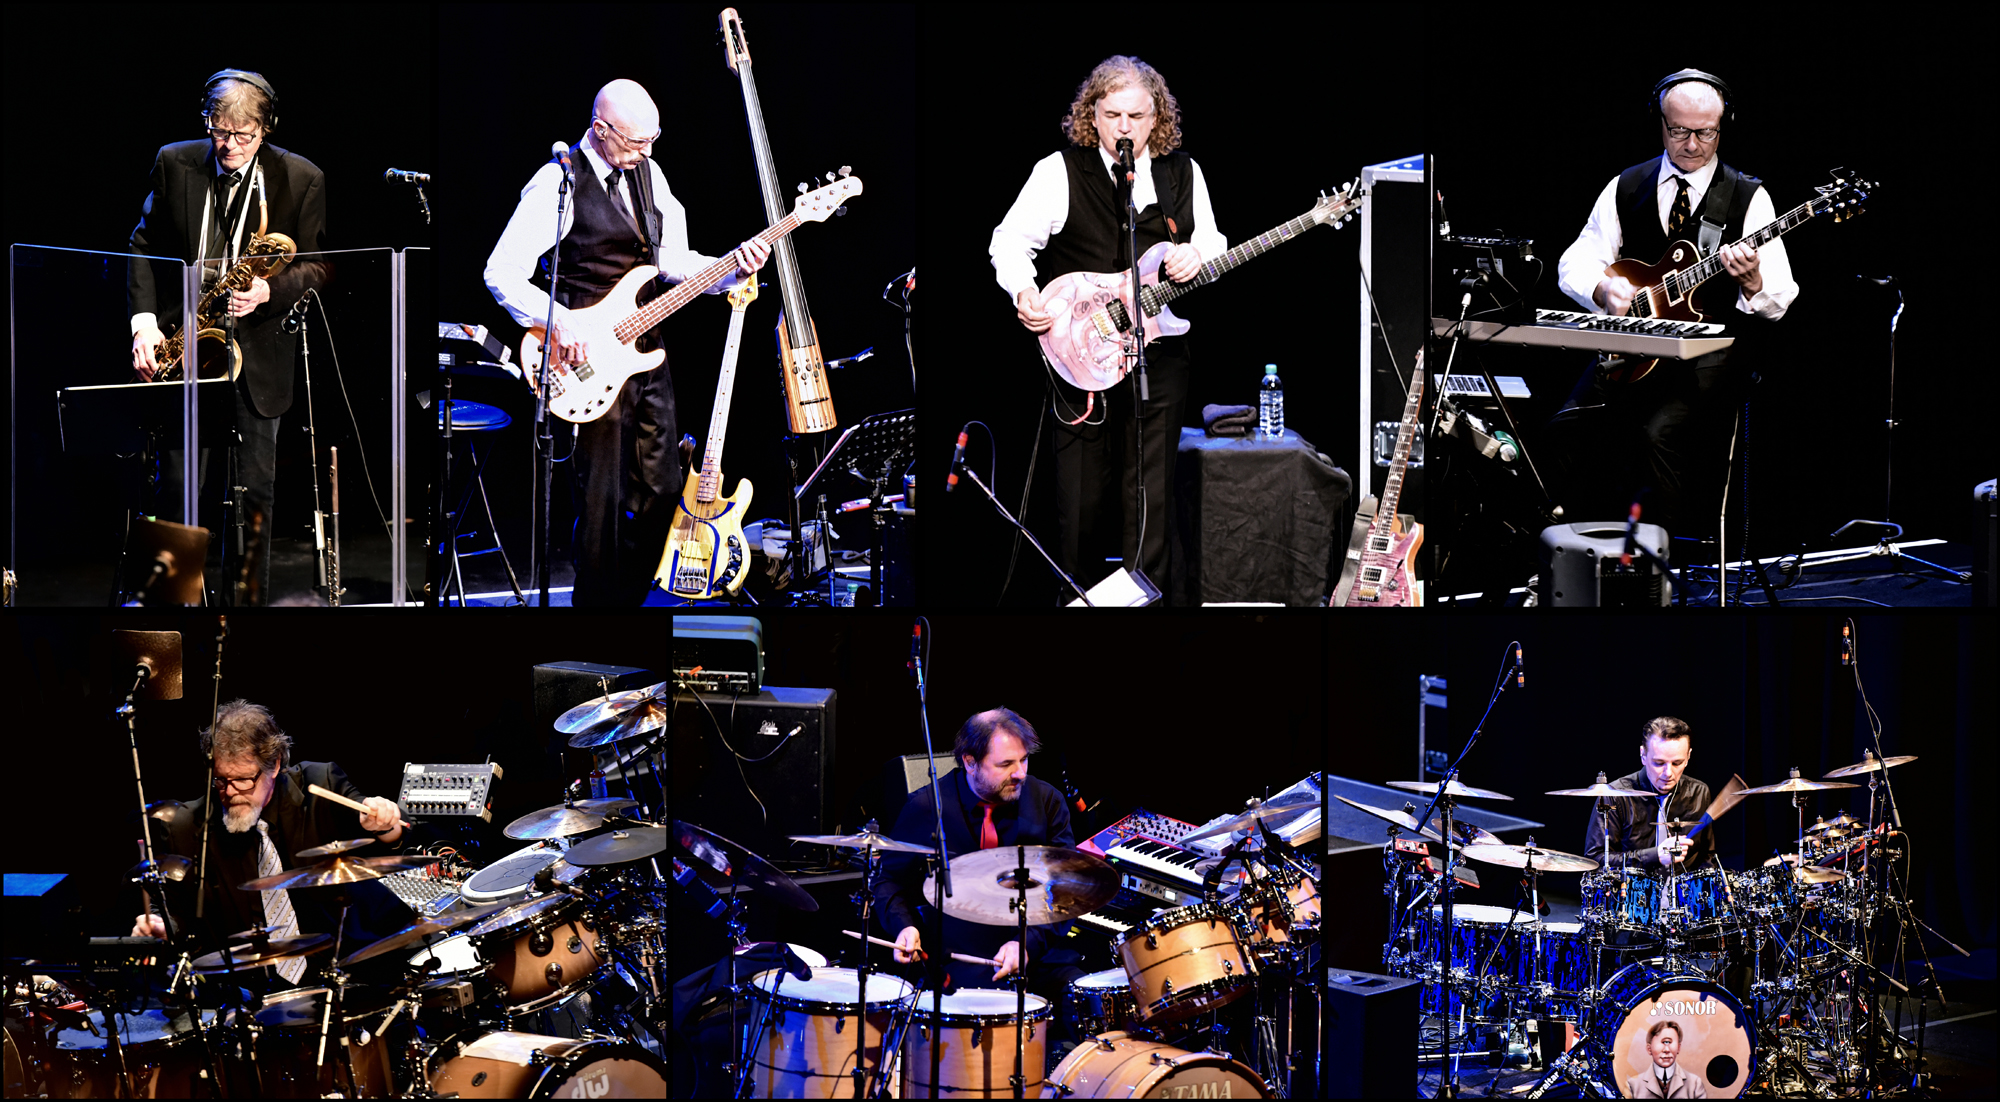 king-crimson-european-tour-robert-fripp-jakko-jakszyk